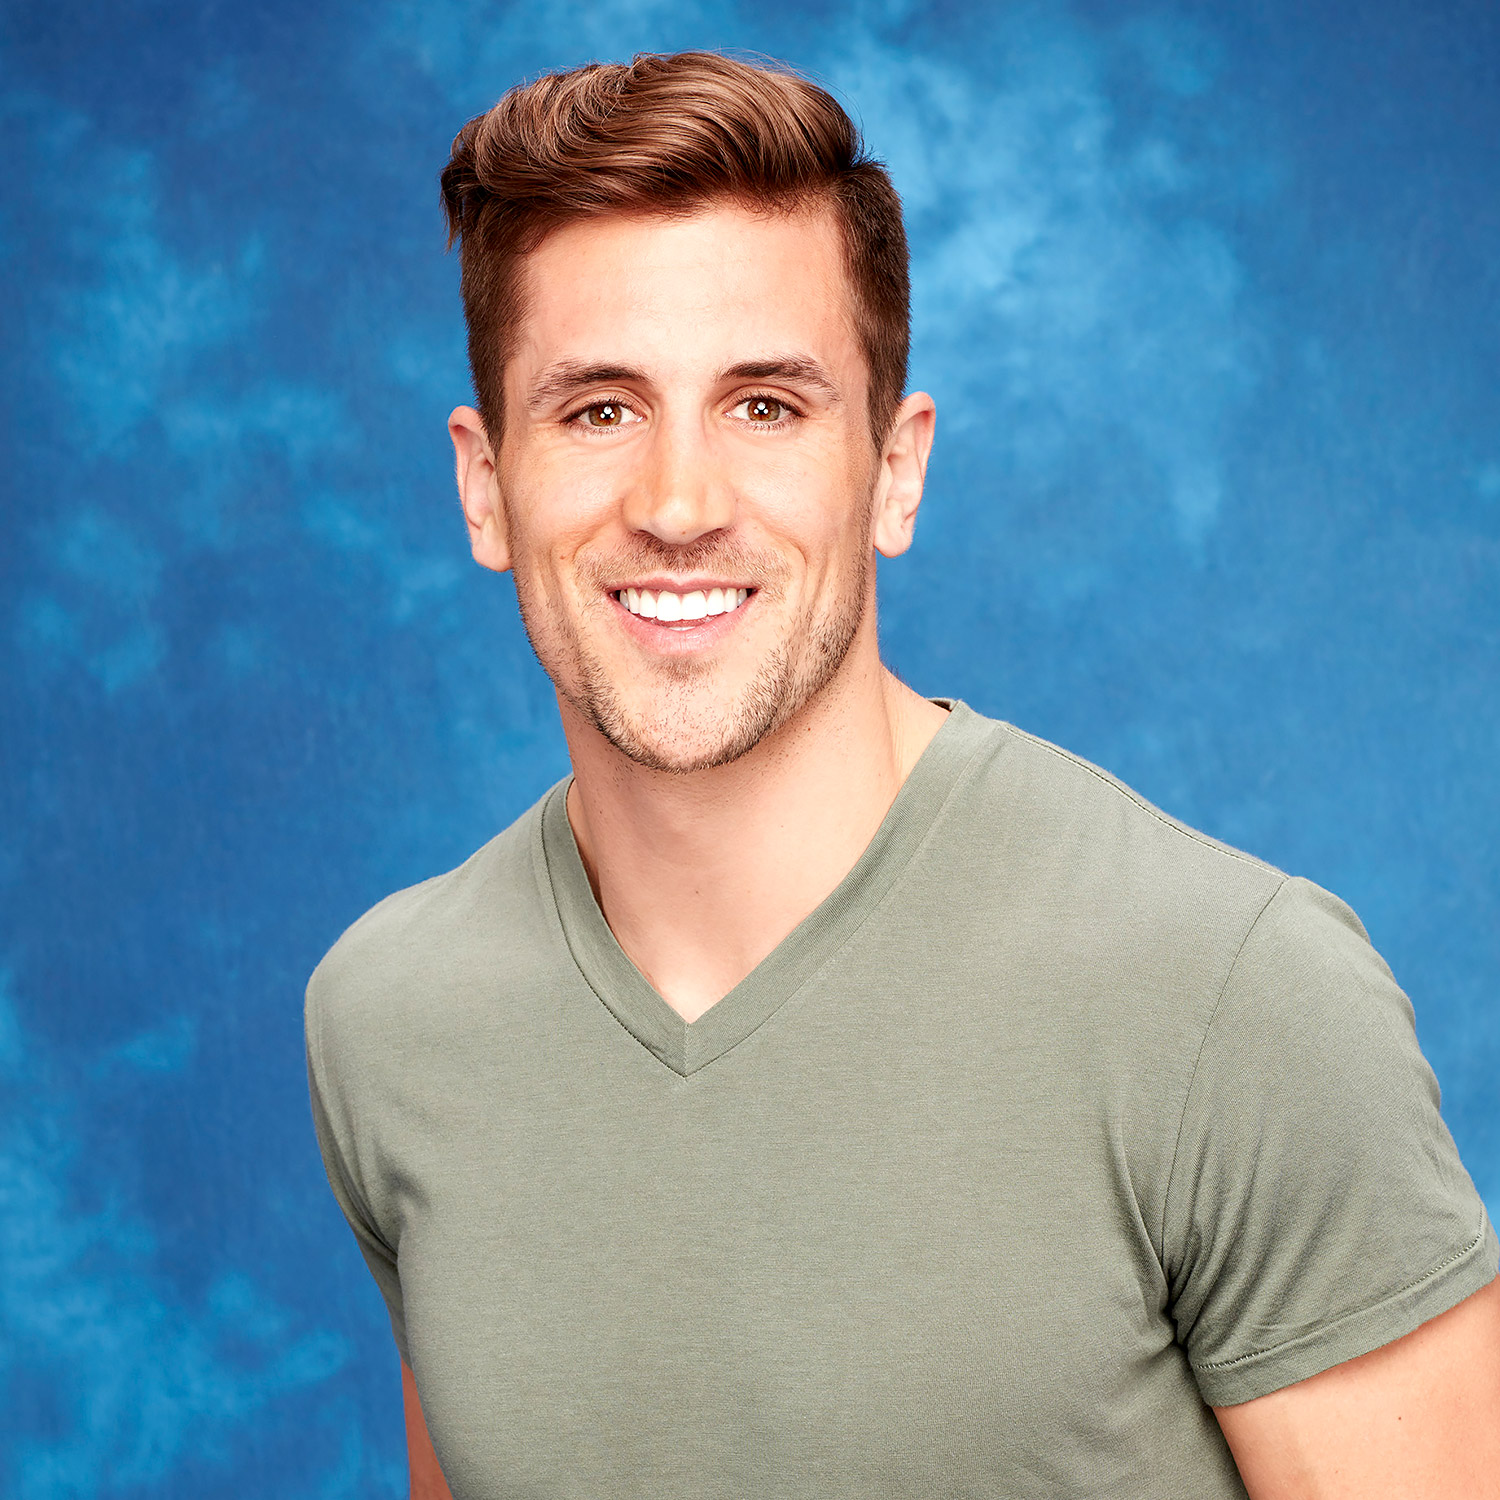 Jordan From The Bachelorette